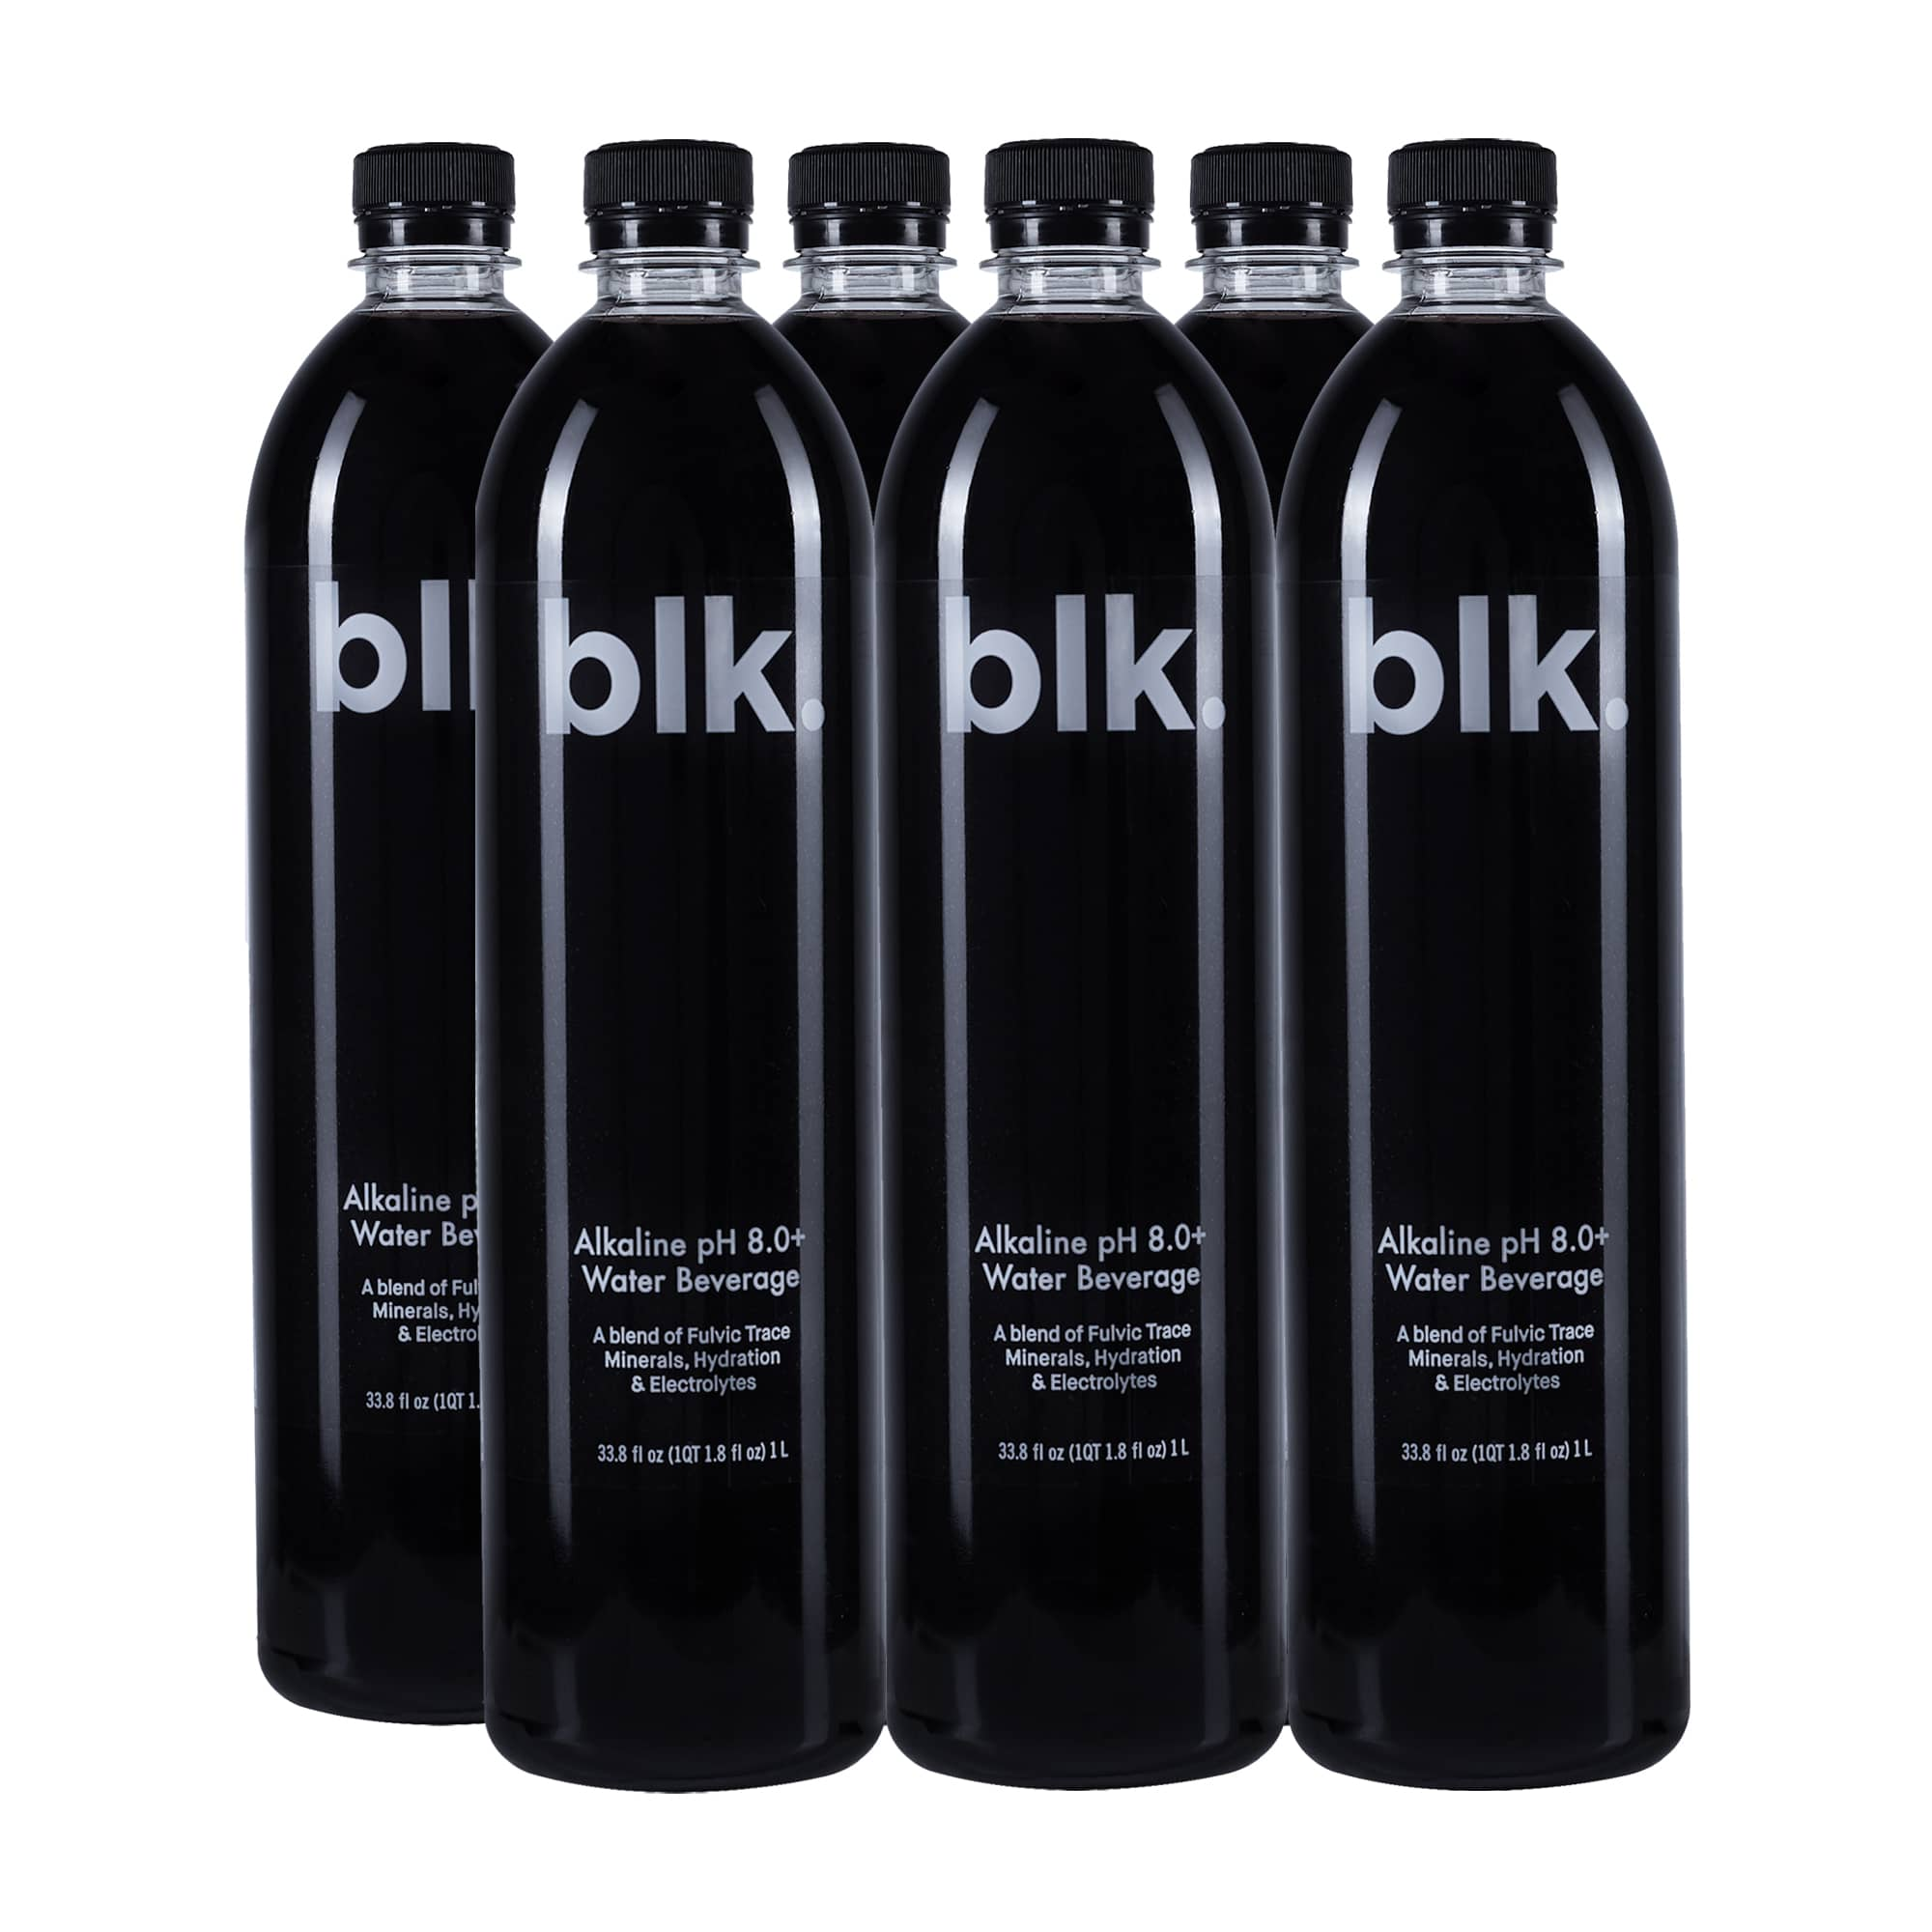 blk. Original Alkaline Water pH 8.0+ with Fulvic Trace Minerals